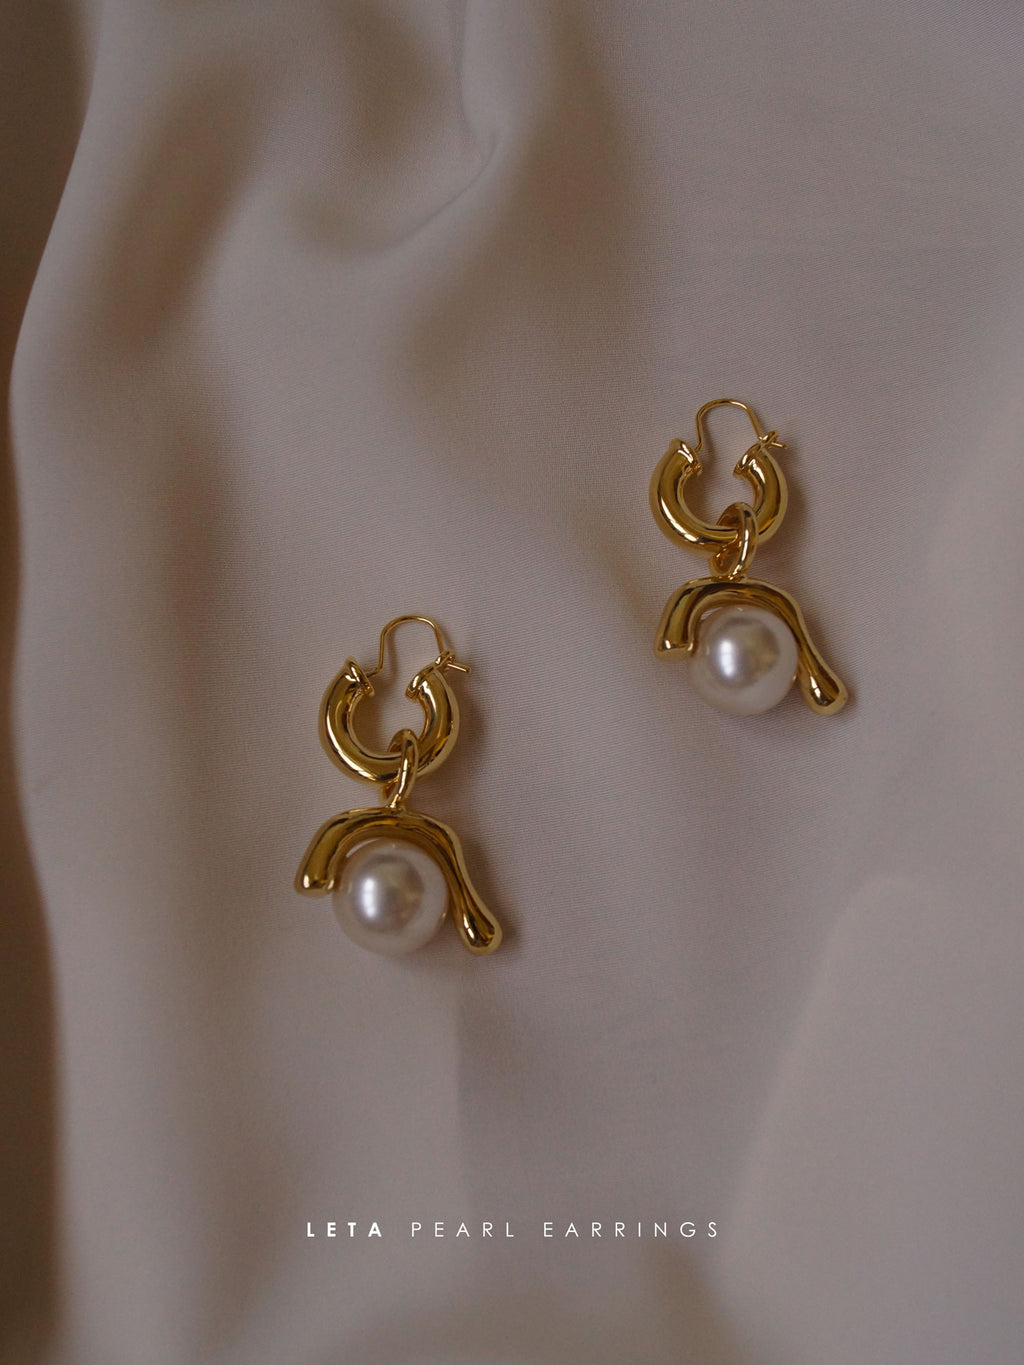 Leta Pearl Earrings (Gold-plated) *GABI PREMIUM